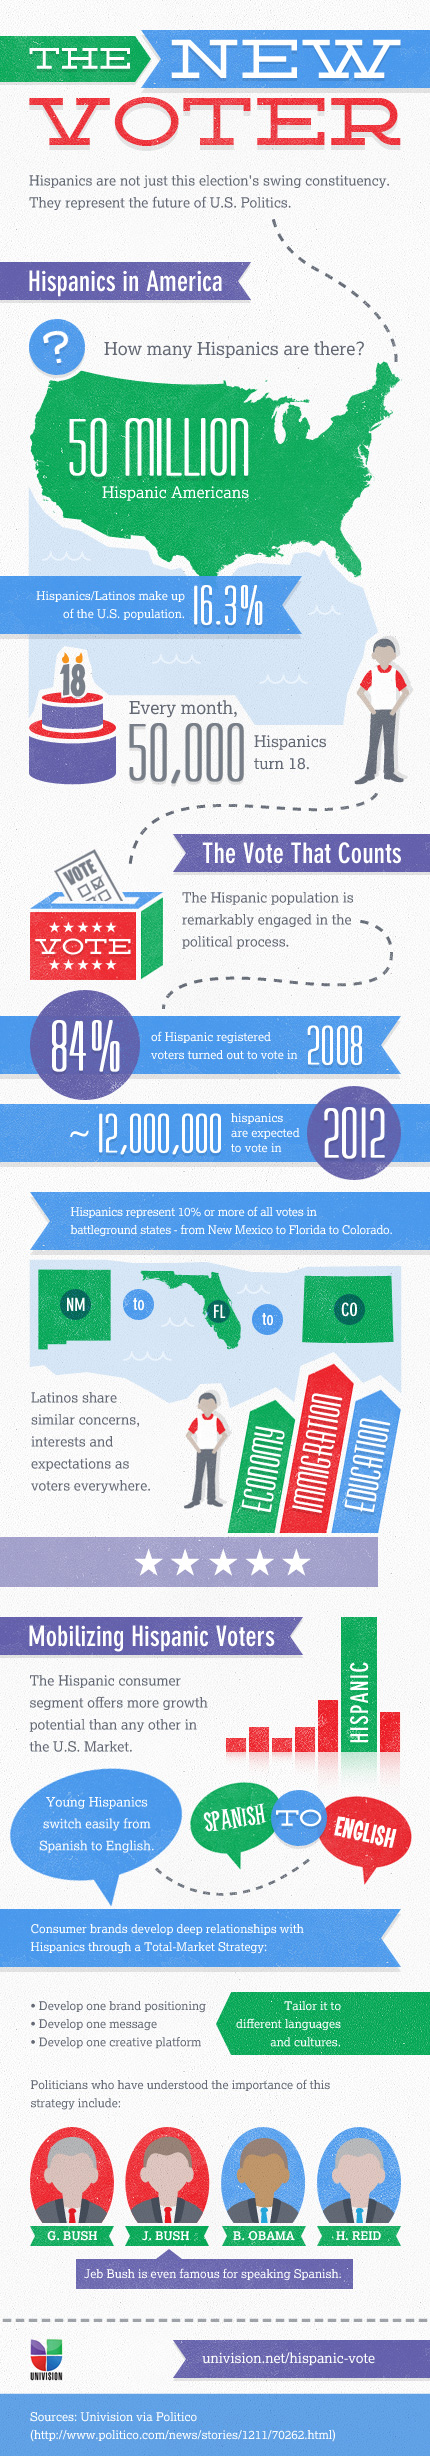 Voter Turnout Hispanic Facts